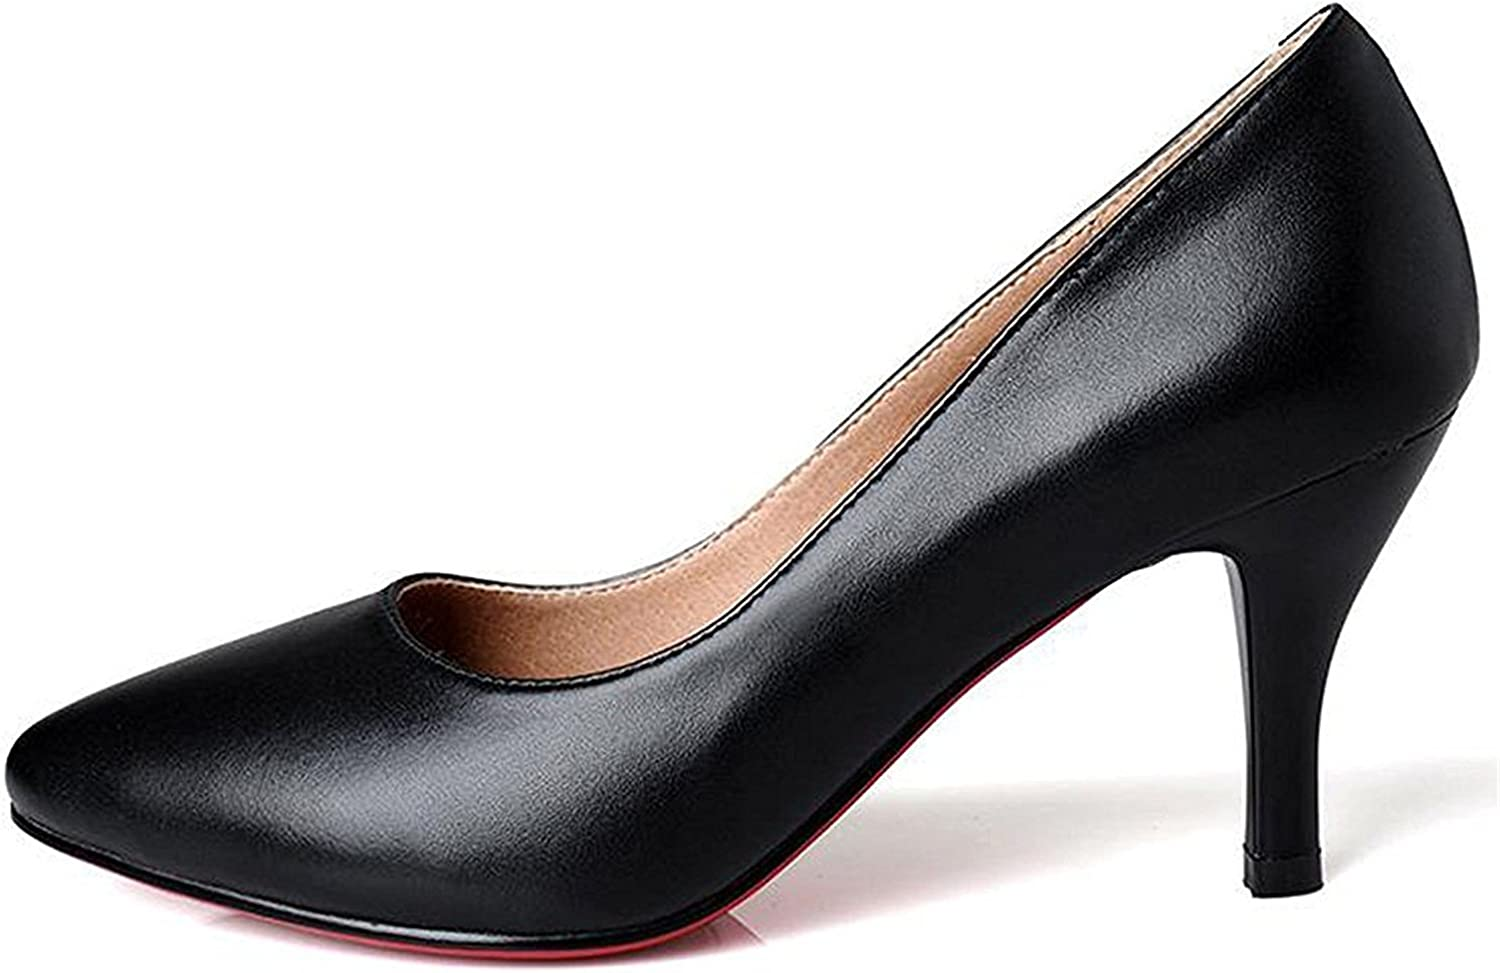 Davikey Women's Classic High Heels Leather Pumps Pointed Toe Dress Pumps Solid Pump